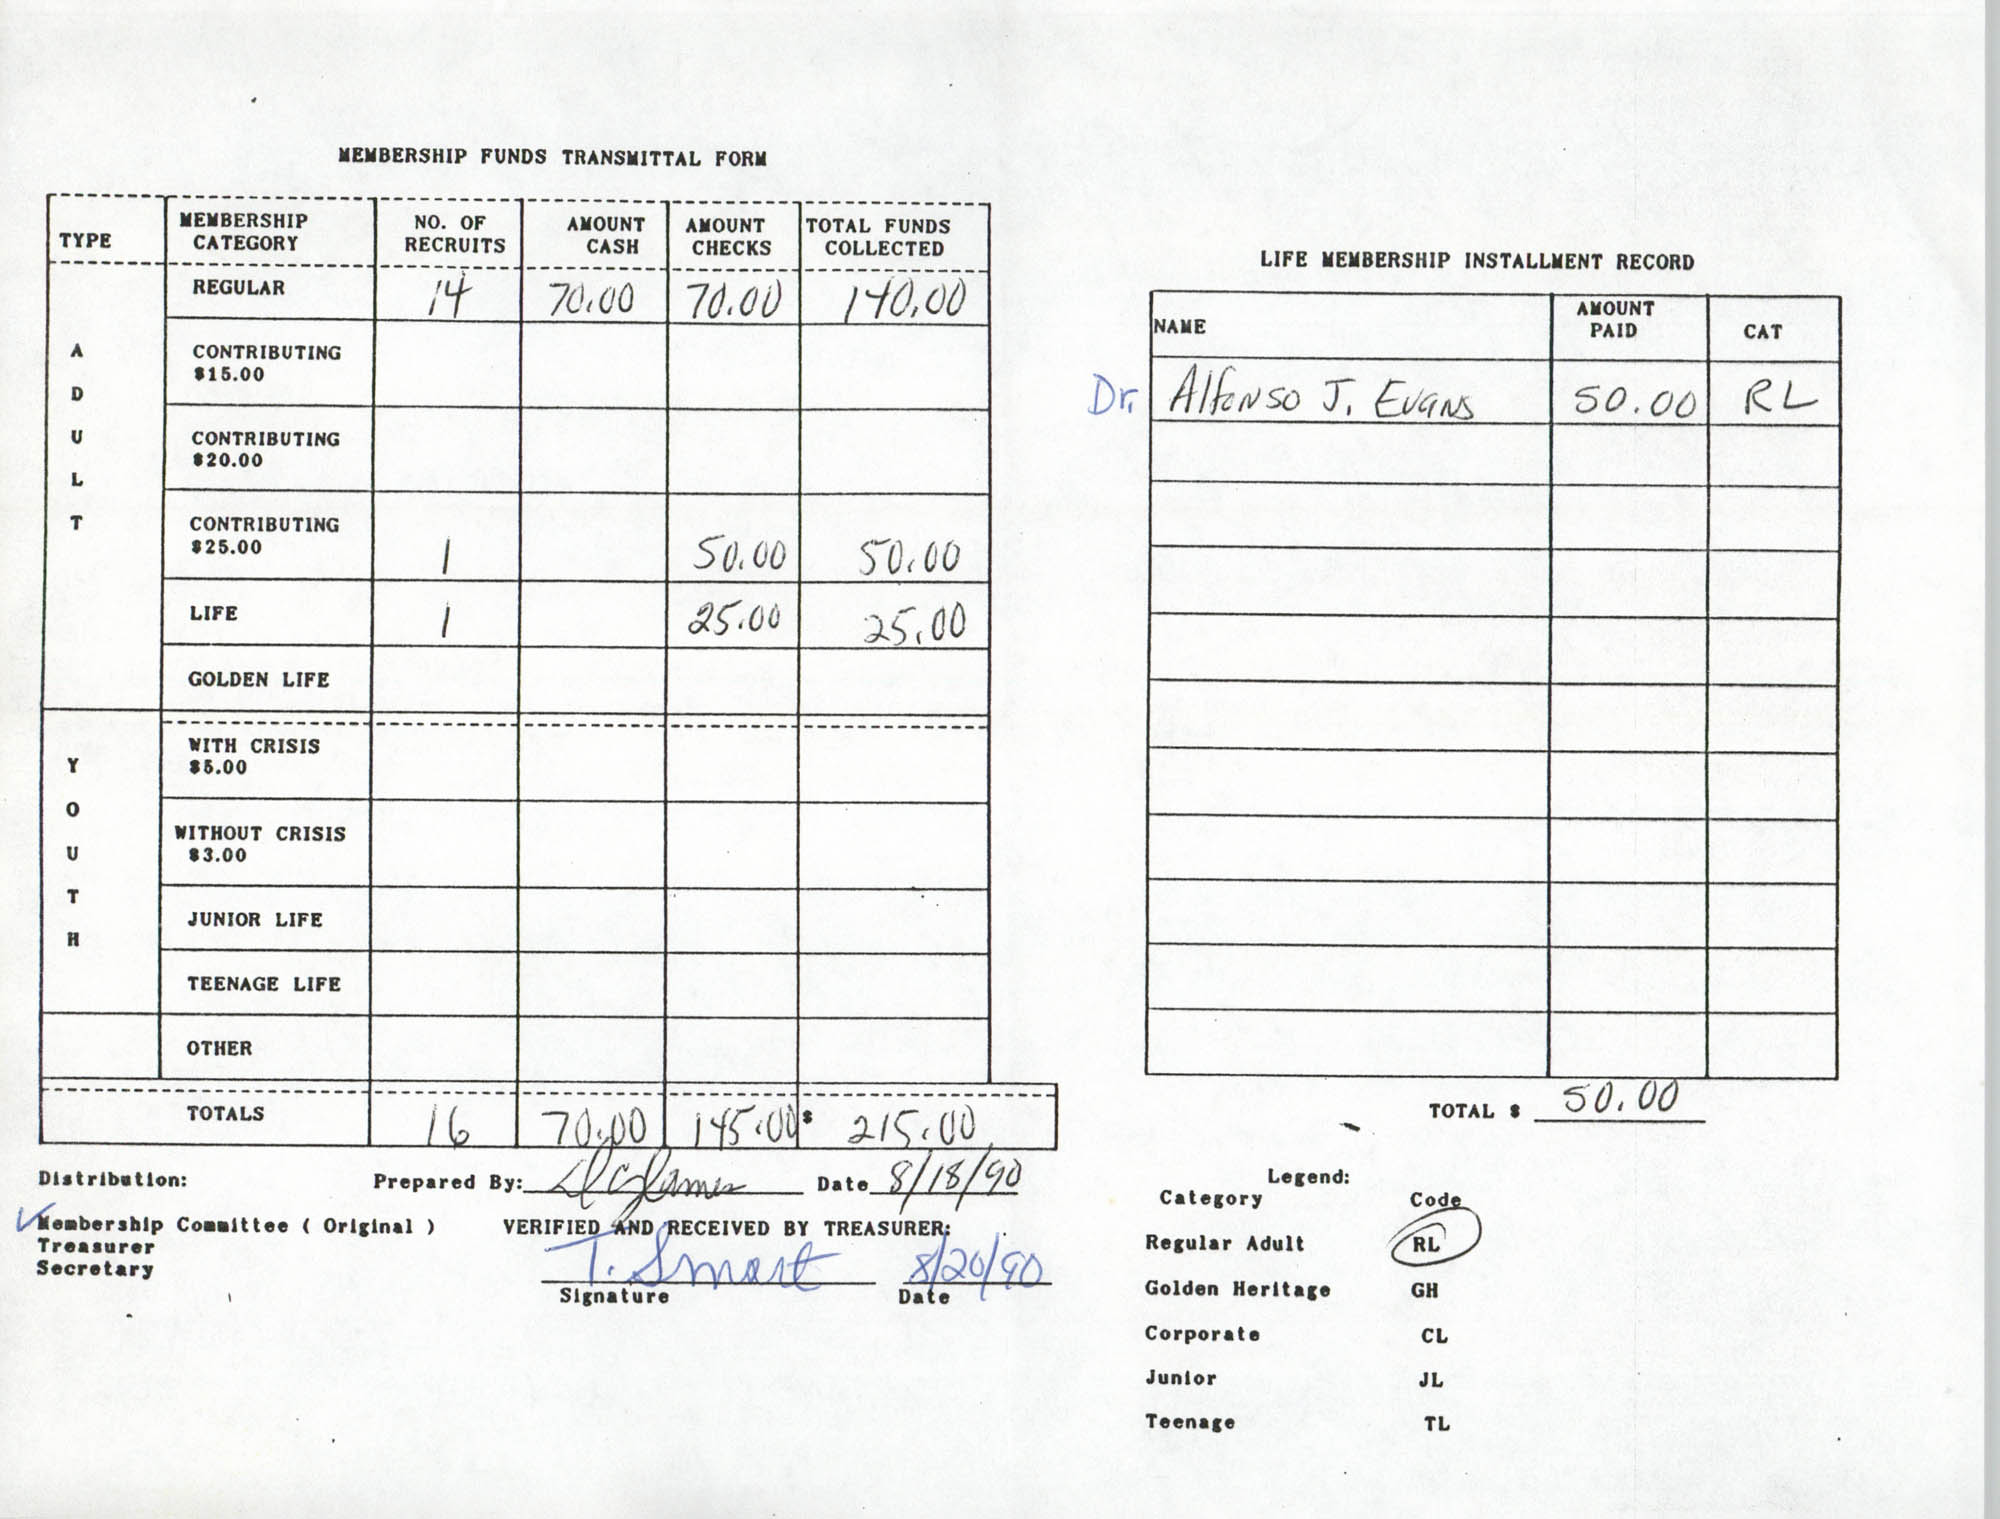 Charleston Branch of the NAACP Funds Transmittal Forms, August 1990, Page 2